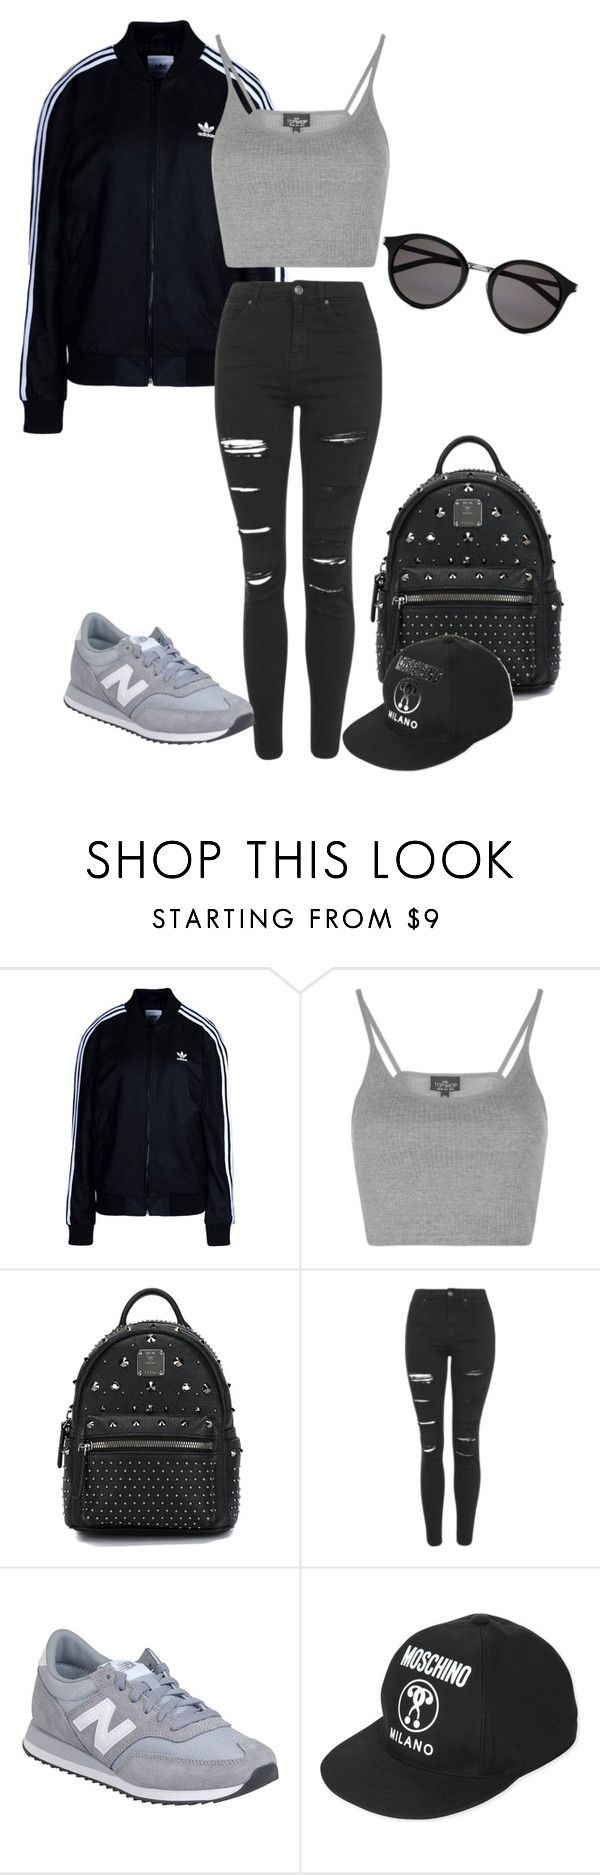 """""""Untitled #301"""" by dimitrismatina ❤ liked on Polyvore featuring adidas Originals, Topshop, MCM, New Balance, Moschino and Yves Saint Laurent"""